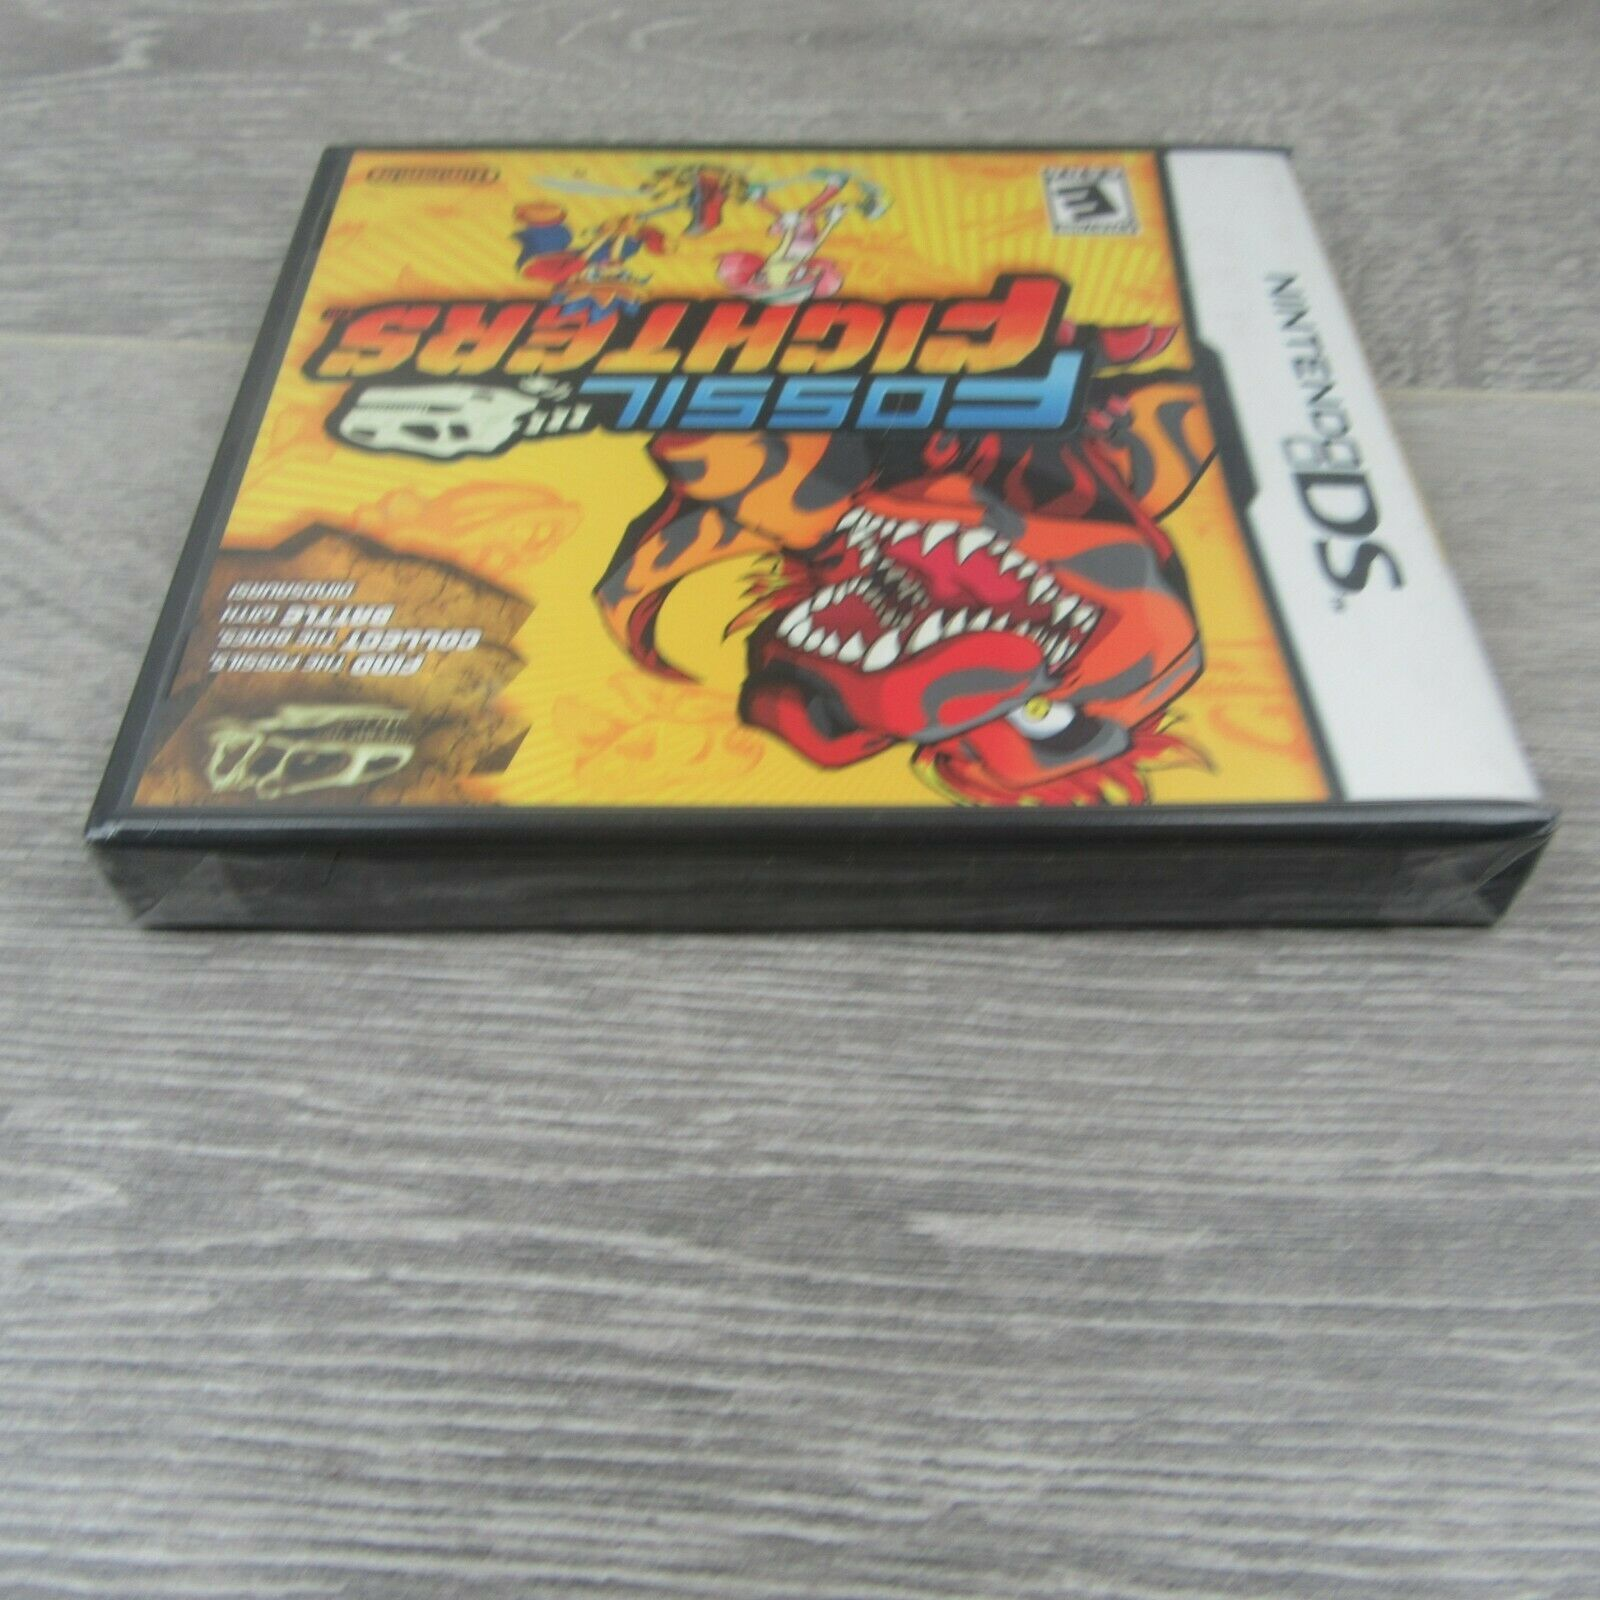 Fossil Fighters Nintendo DS Video Game Brand New & Sealed